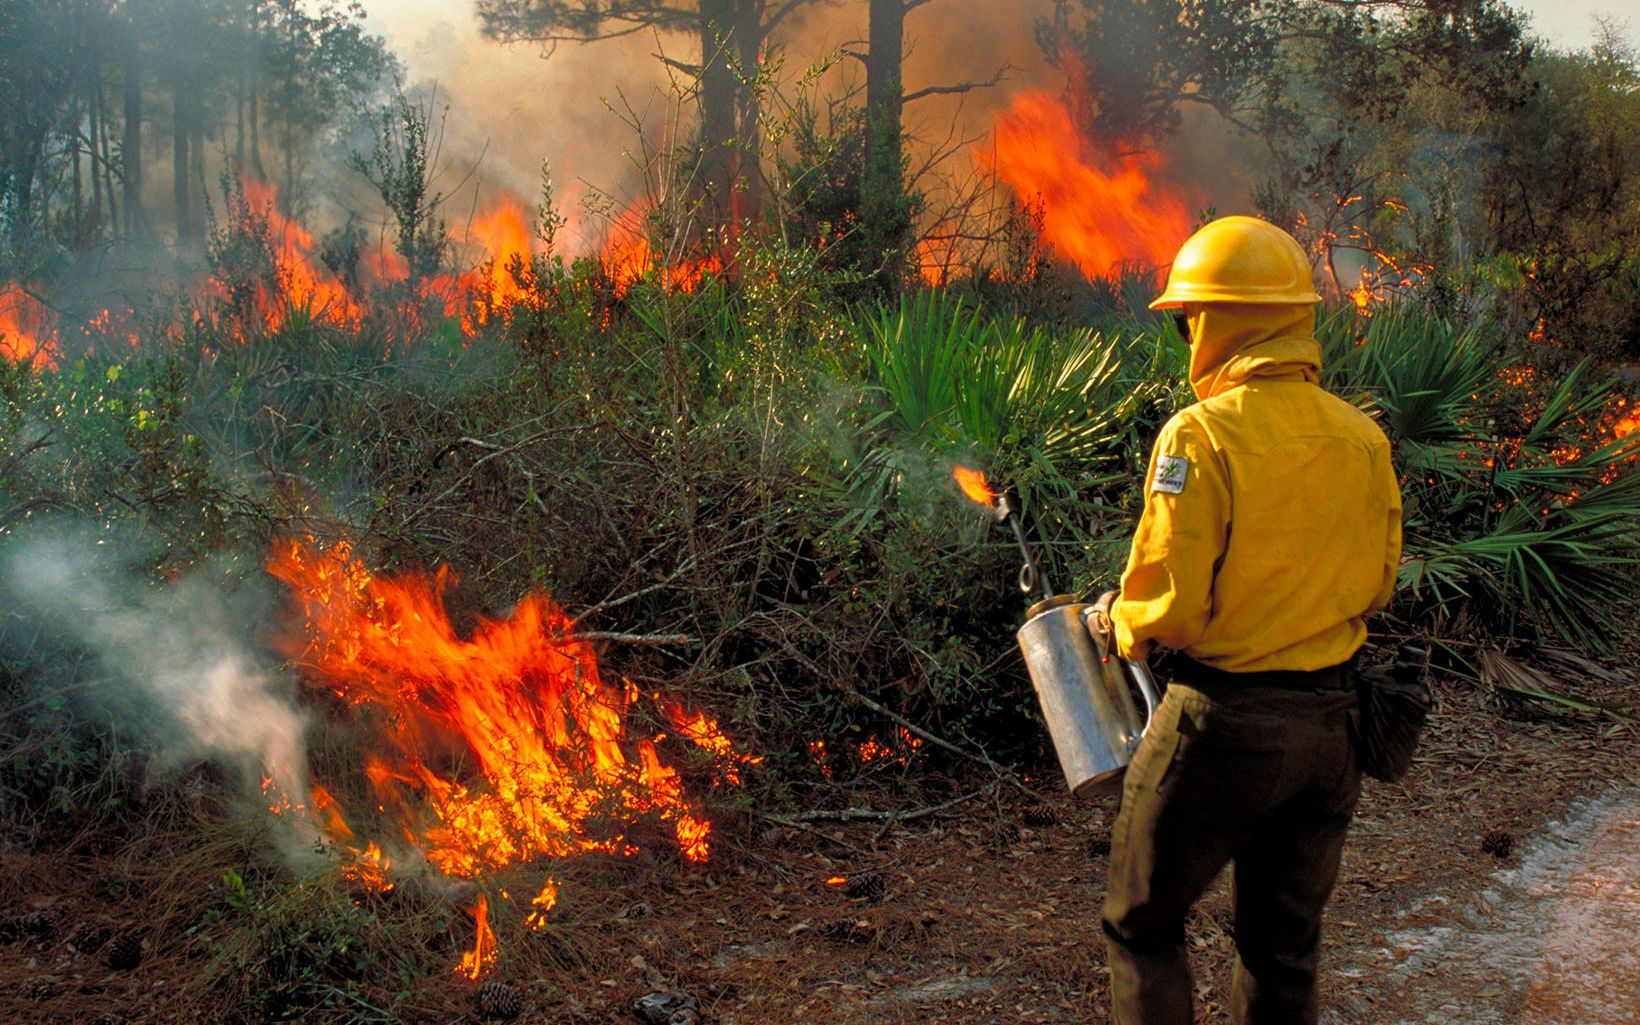 Prescribed fire in Florida